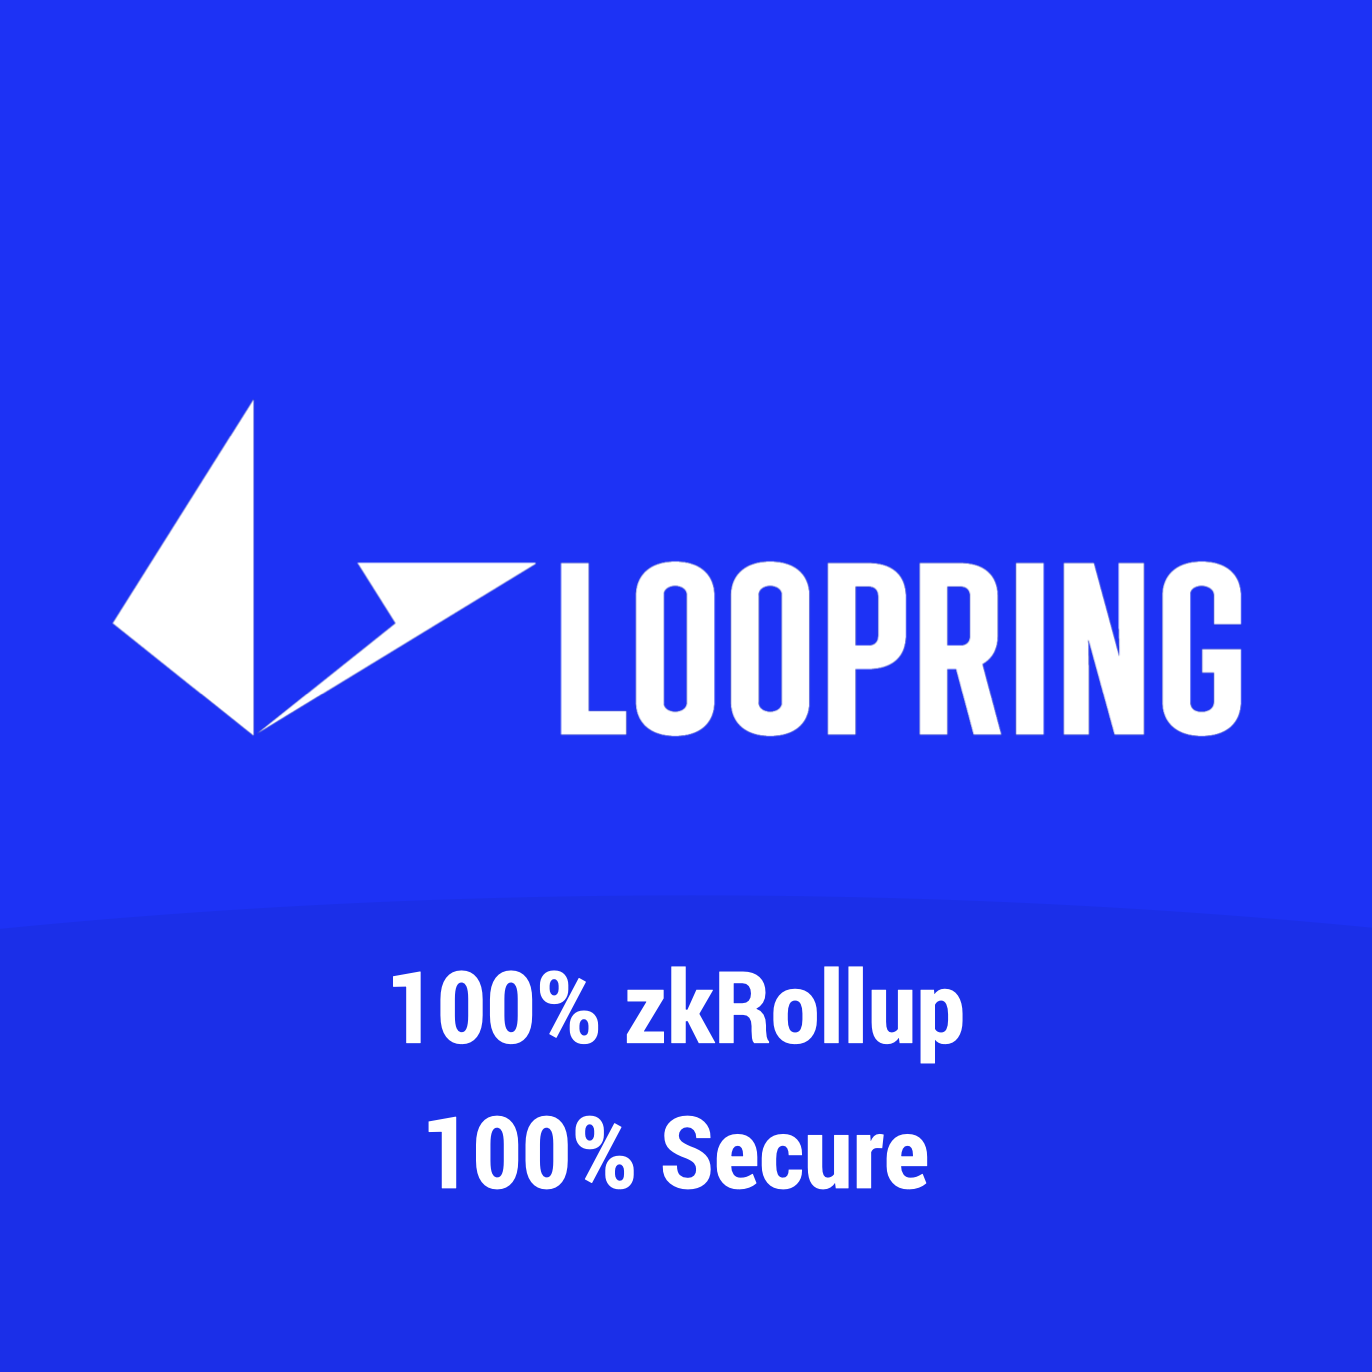 Loopring - zkRollup Layer2 for Trading and Payment